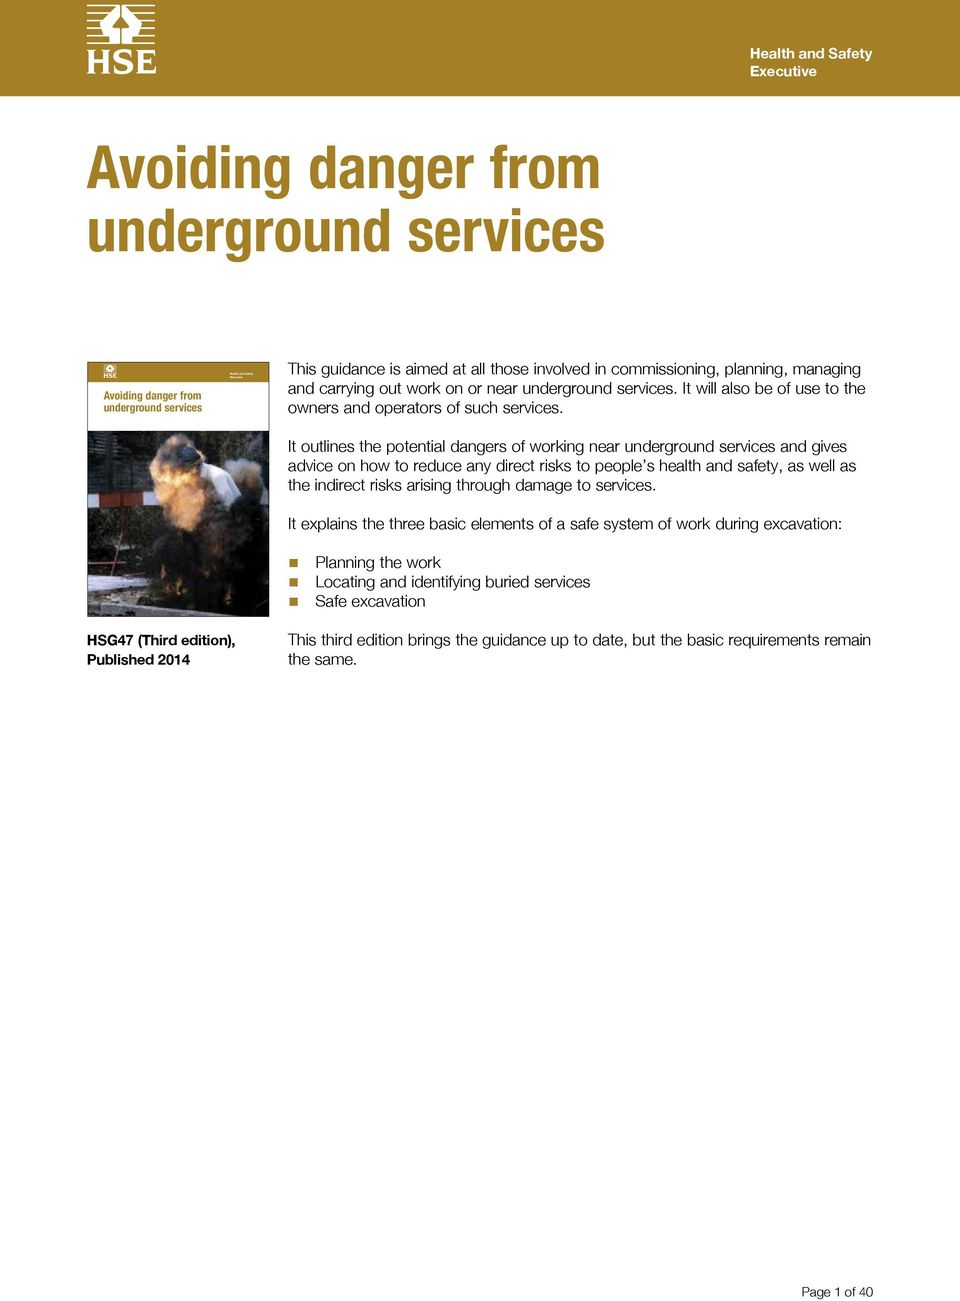 It outlines the potential dangers of working near underground services and gives advice on how to reduce any direct risks to people s health and safety, as well as the indirect risks arising through